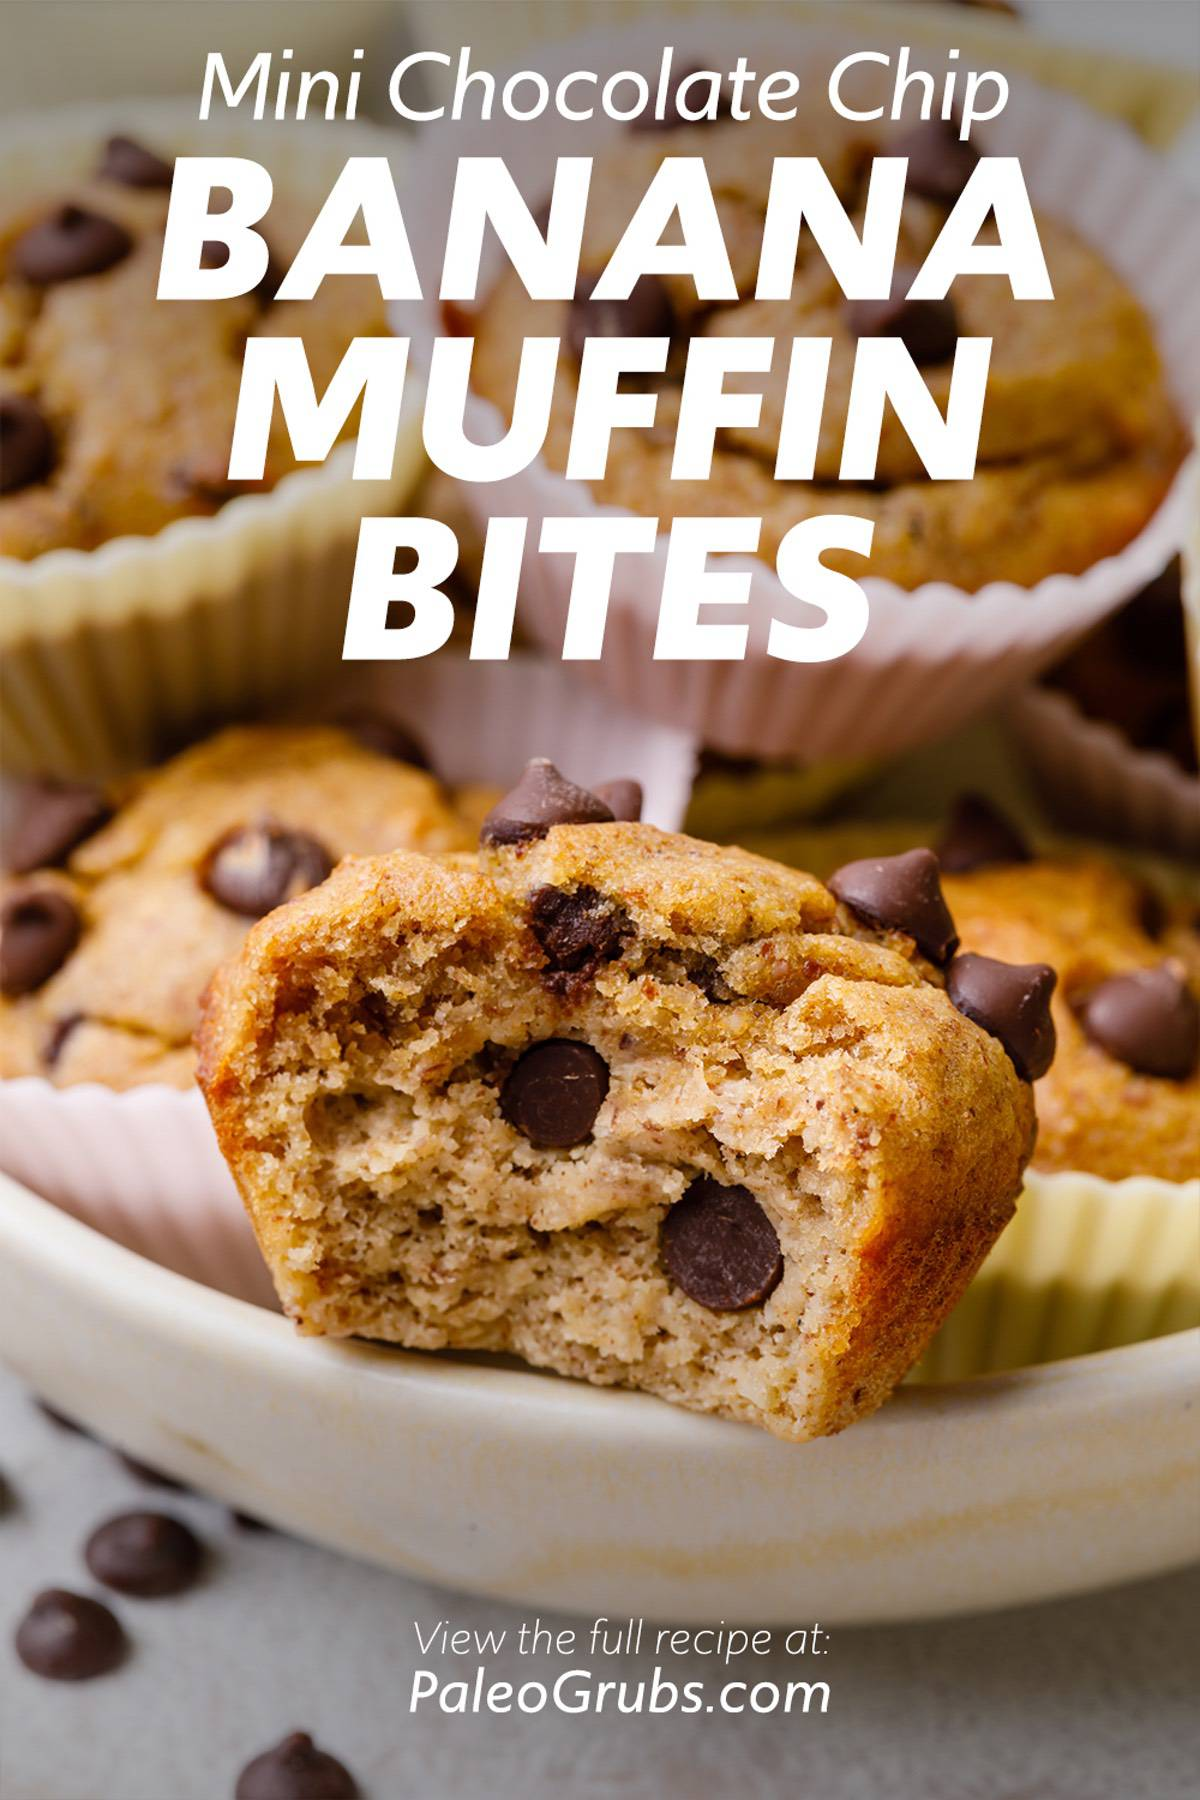 Mini Chocolate Chip Banana Muffin Bites